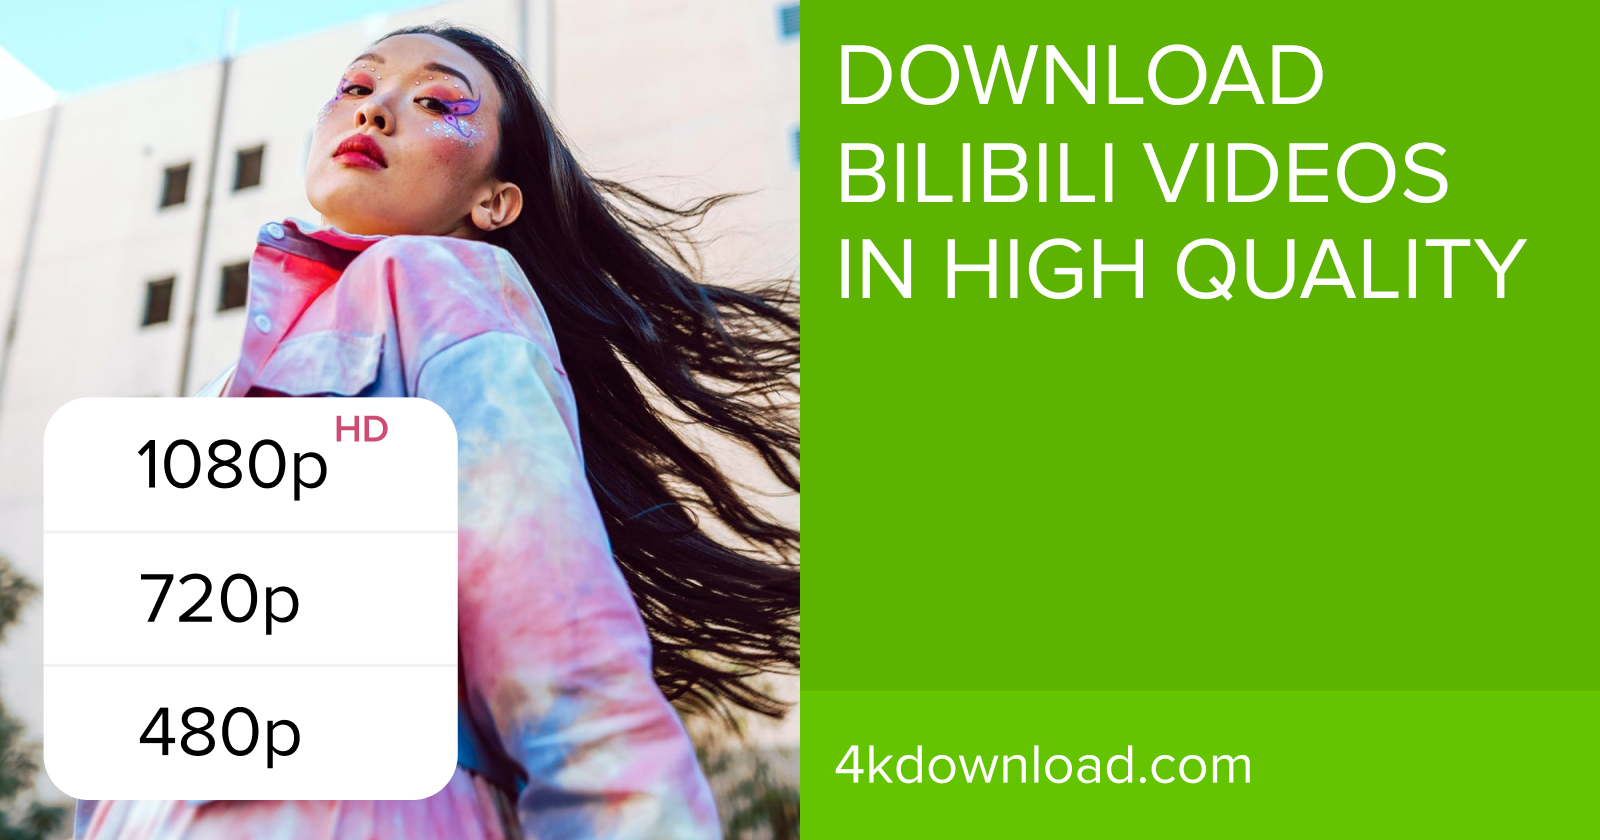 Download Bilibili Videos With Quality Higher Than 480p